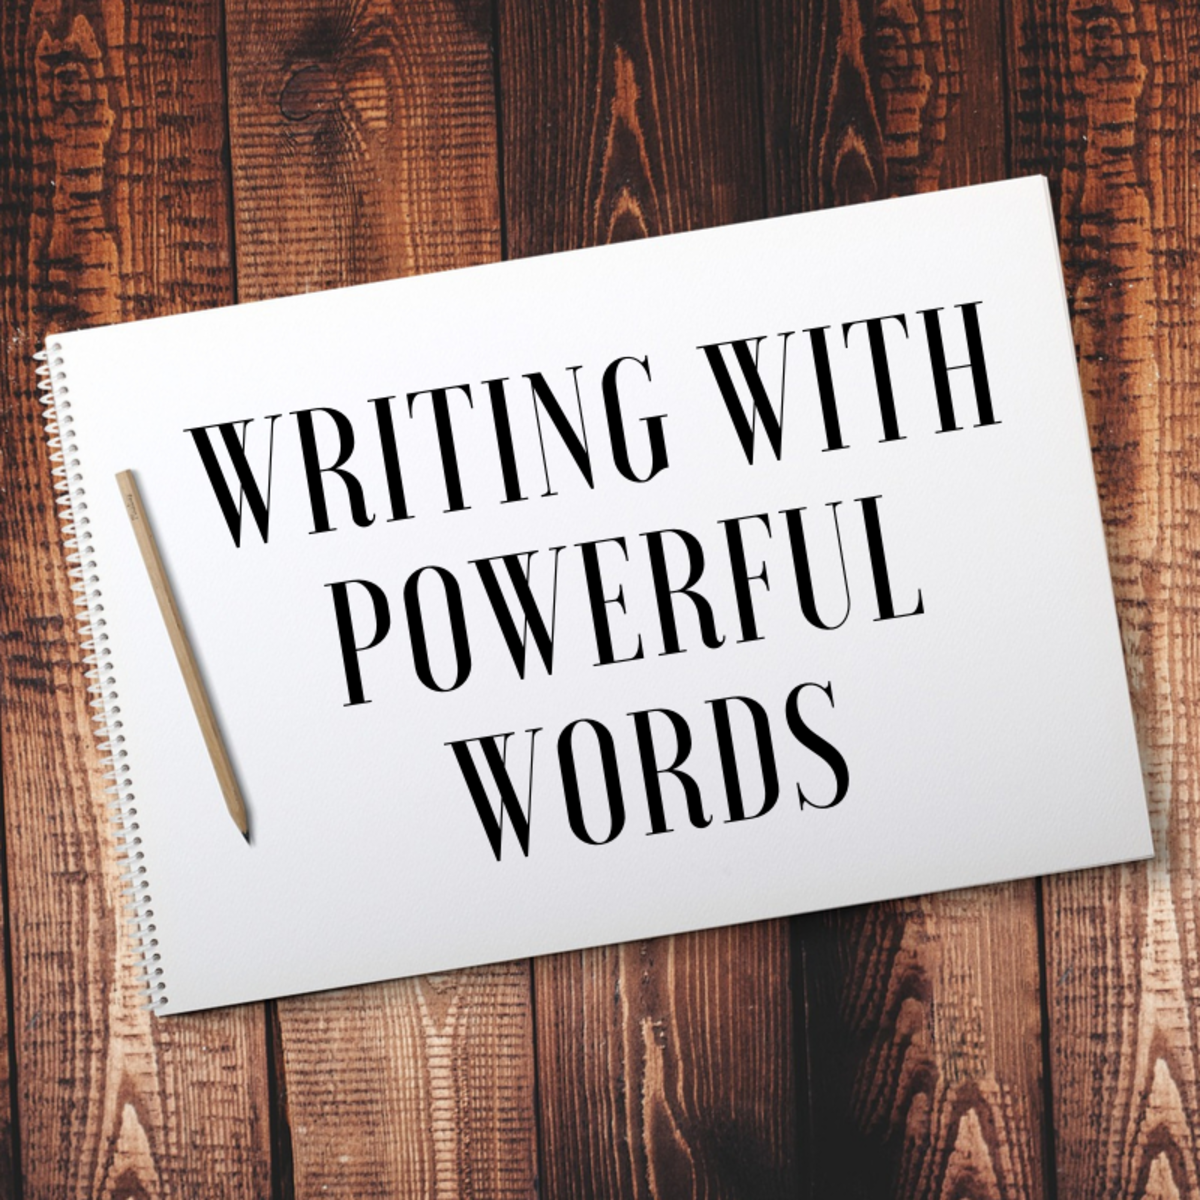 Powerful Words Make Powerful Prose